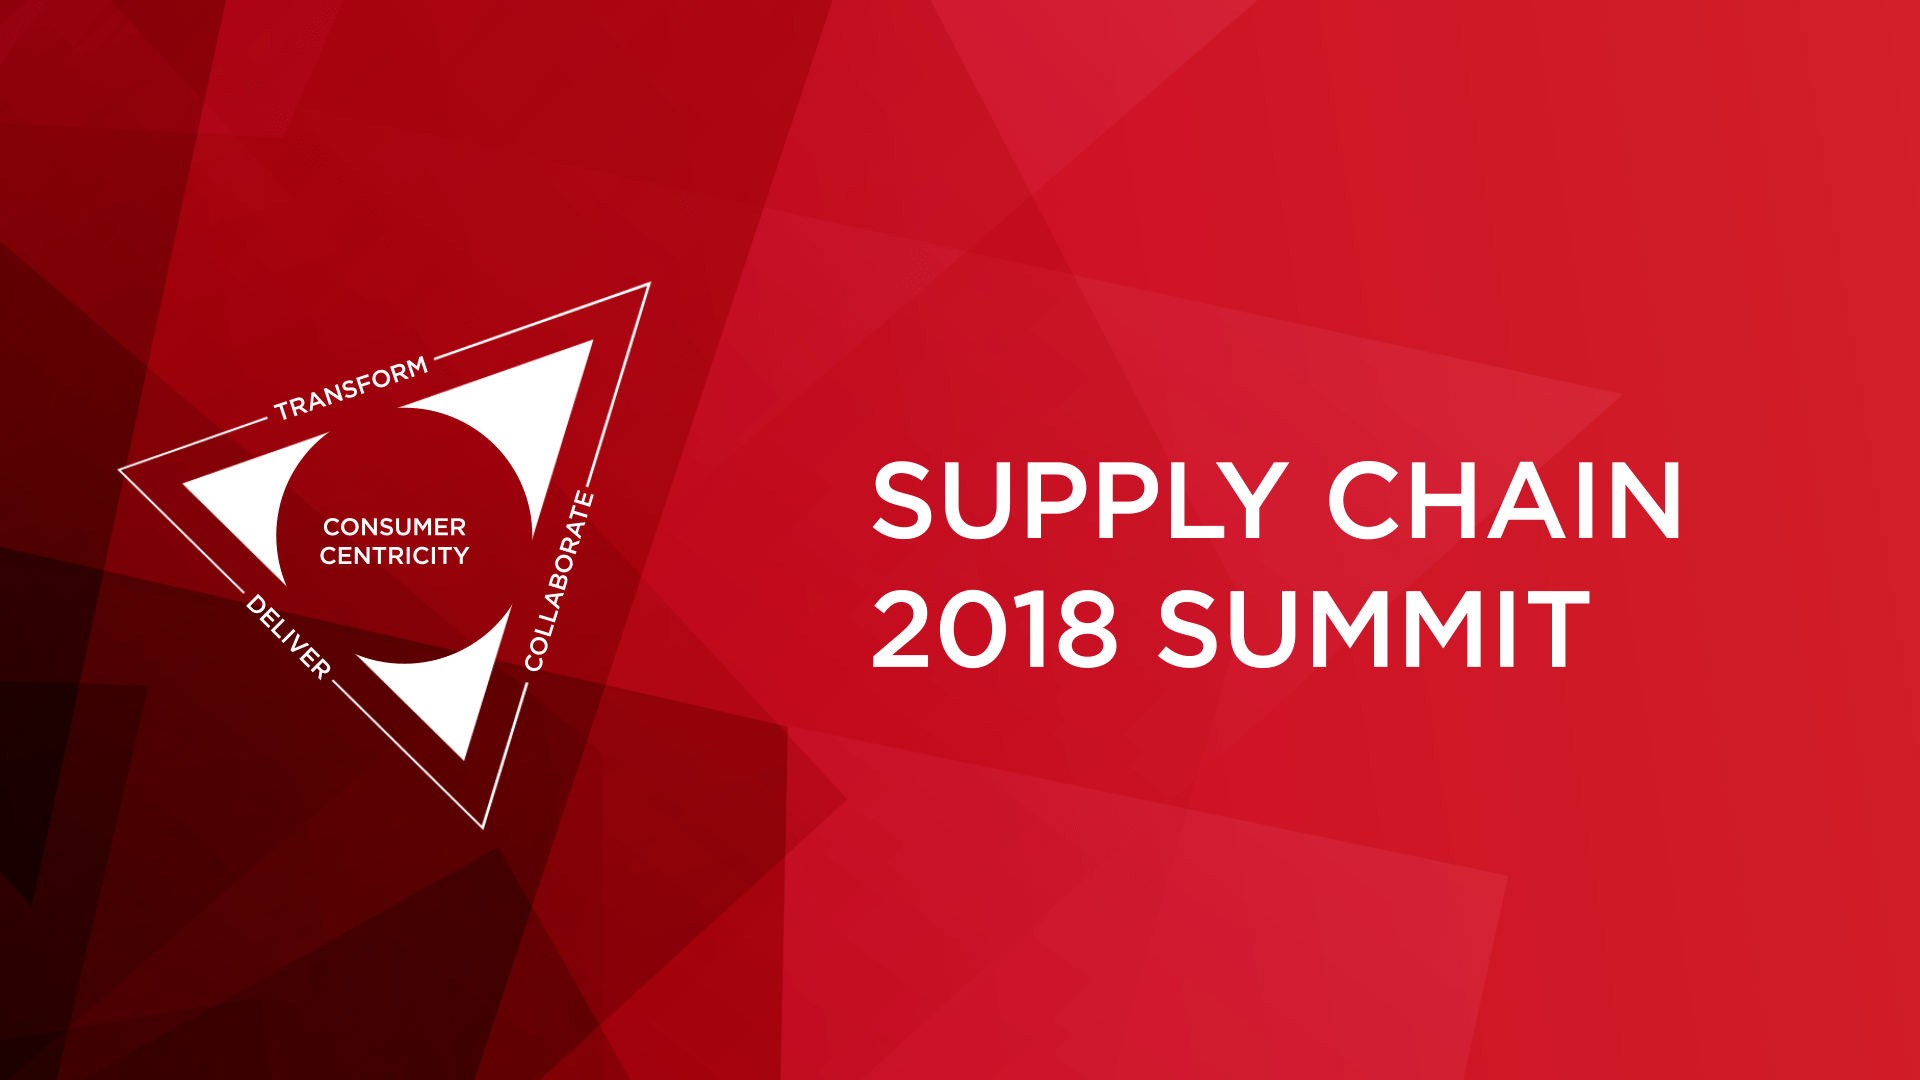 SHISEIDO HOSTS SUPPLY CHAIN SUMMIT 2018  East of Ellie Events Blog